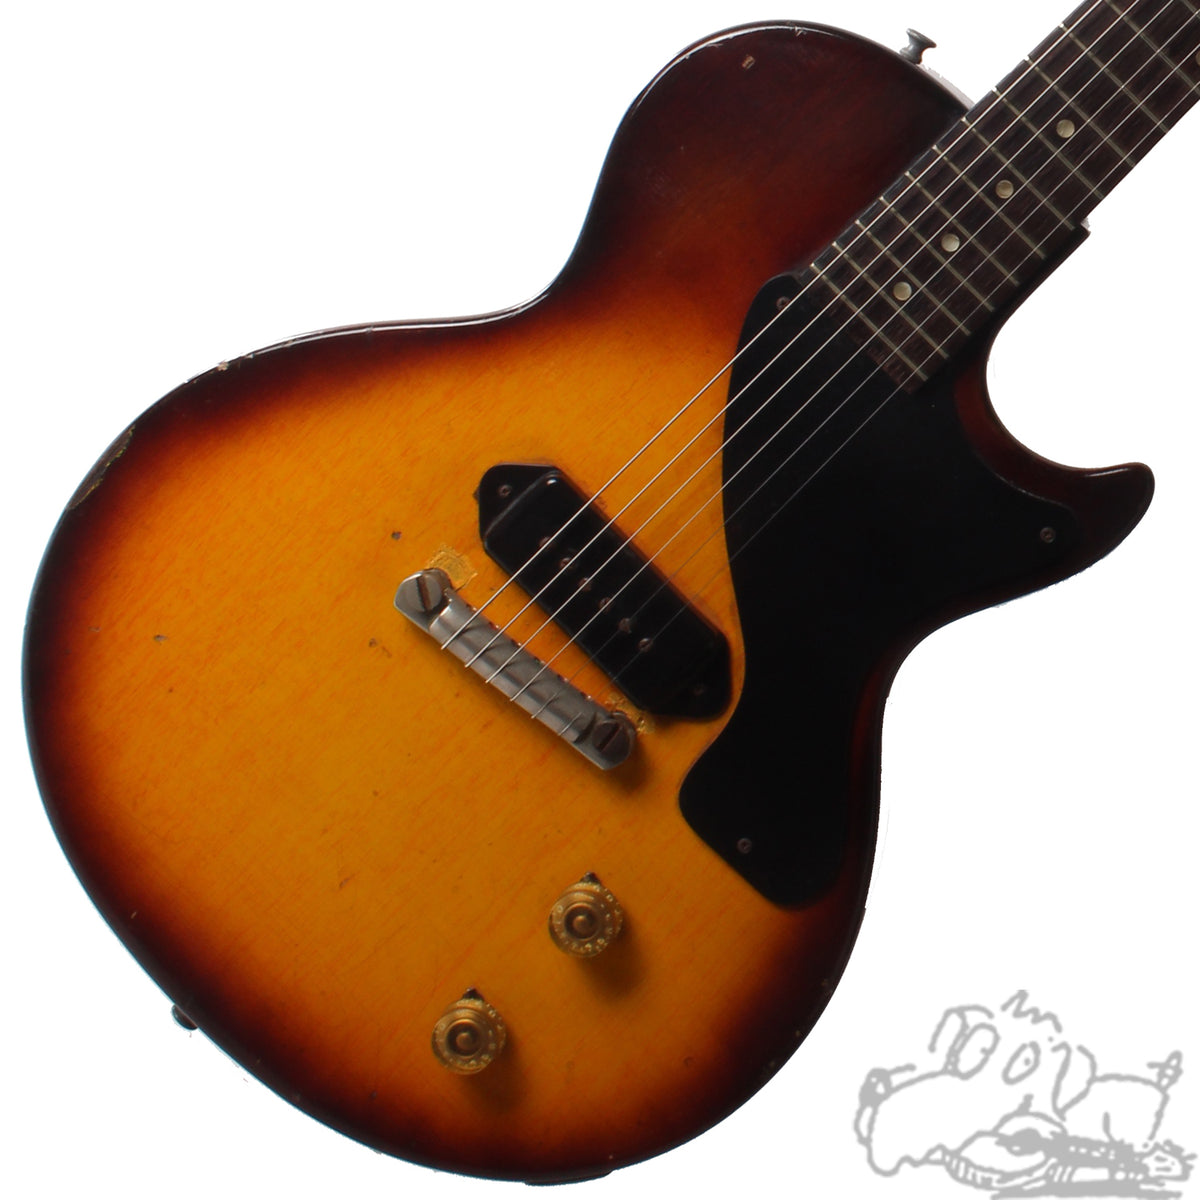 1955 Gibson Les Paul Junior